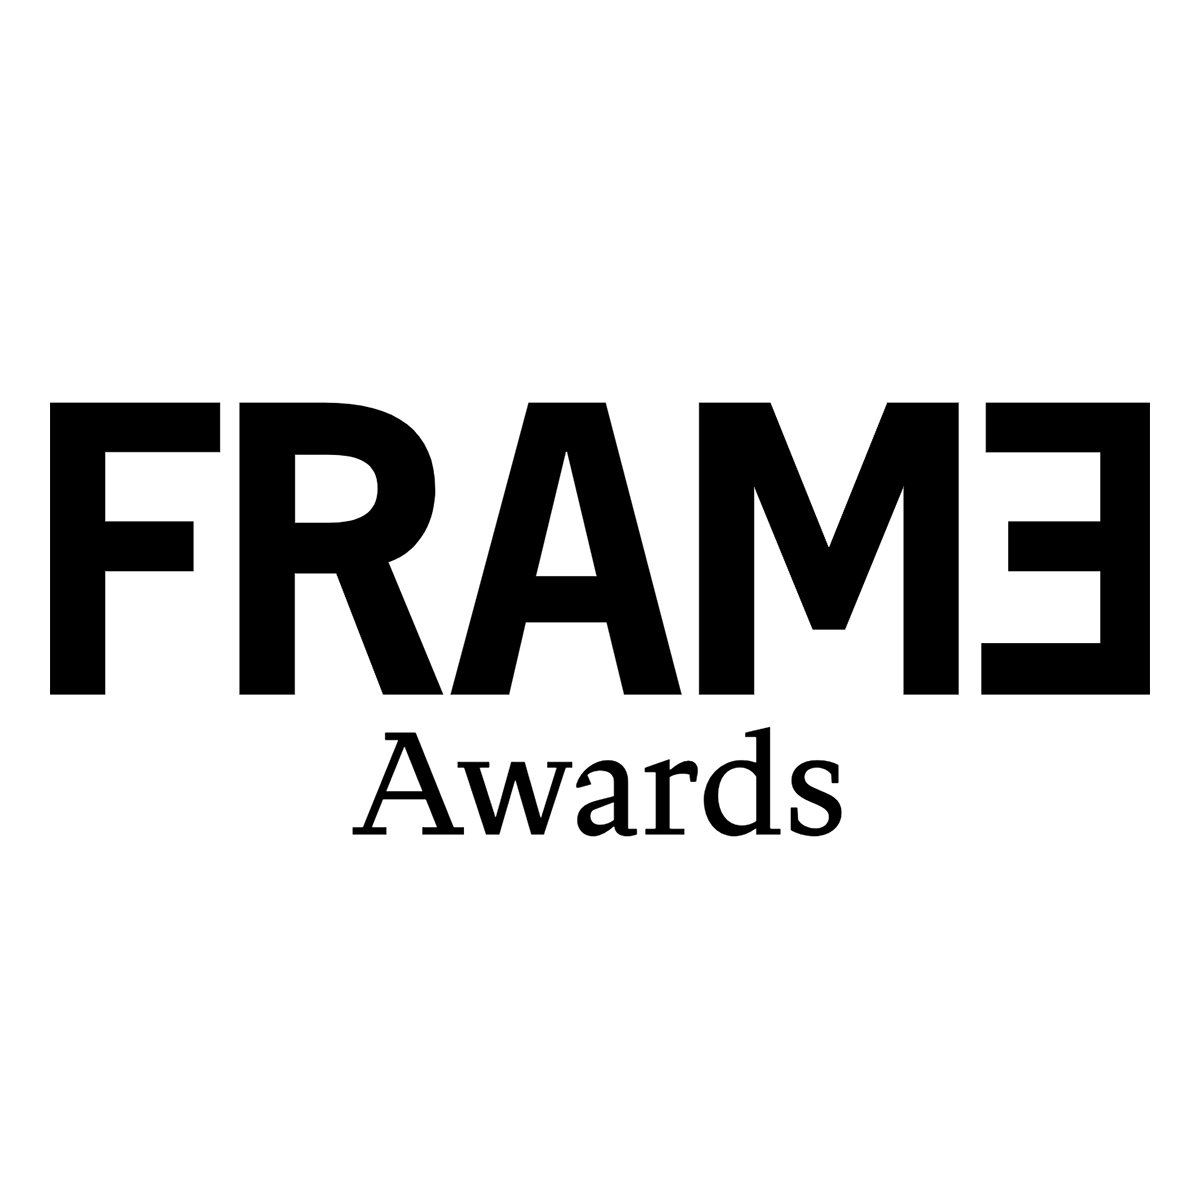 Frame Awards 2019